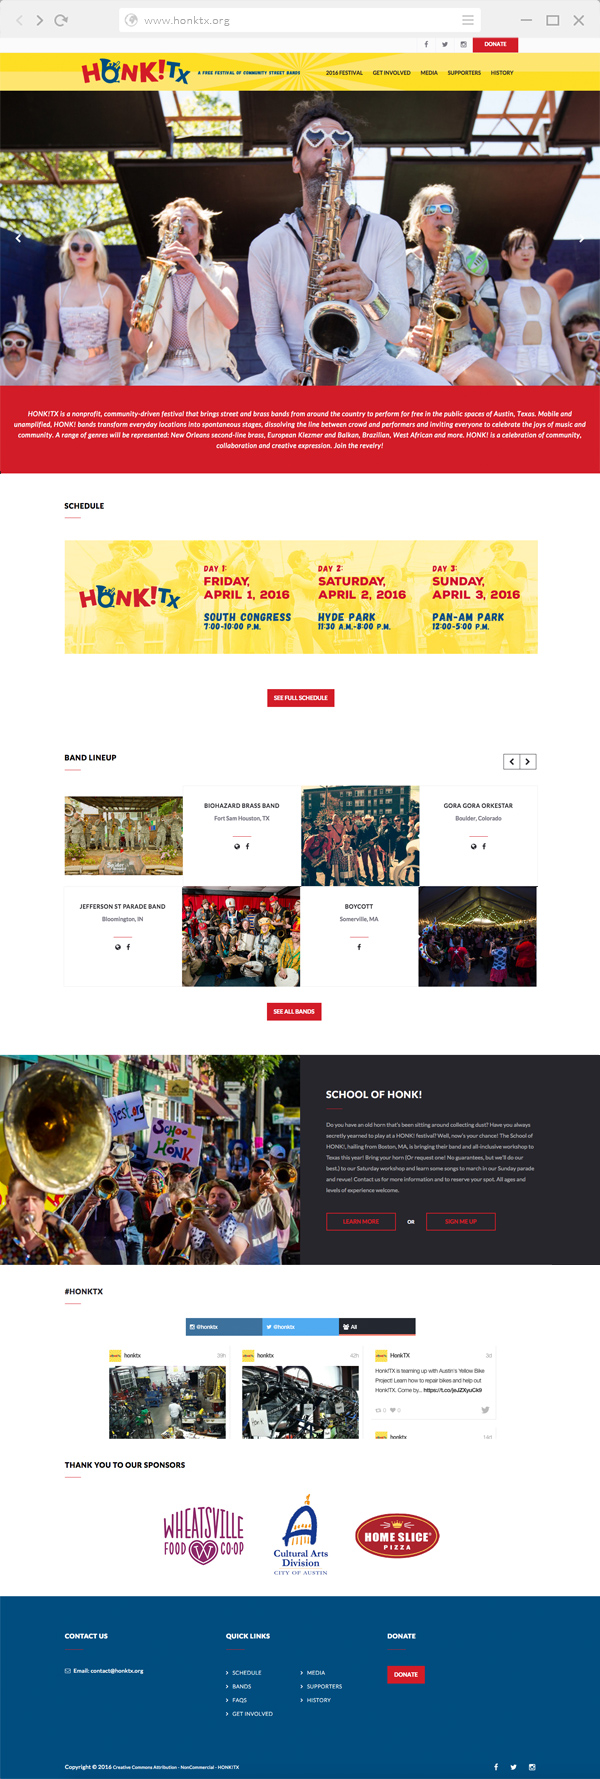 HONK!TX Website by Kara Fuhlbrugge